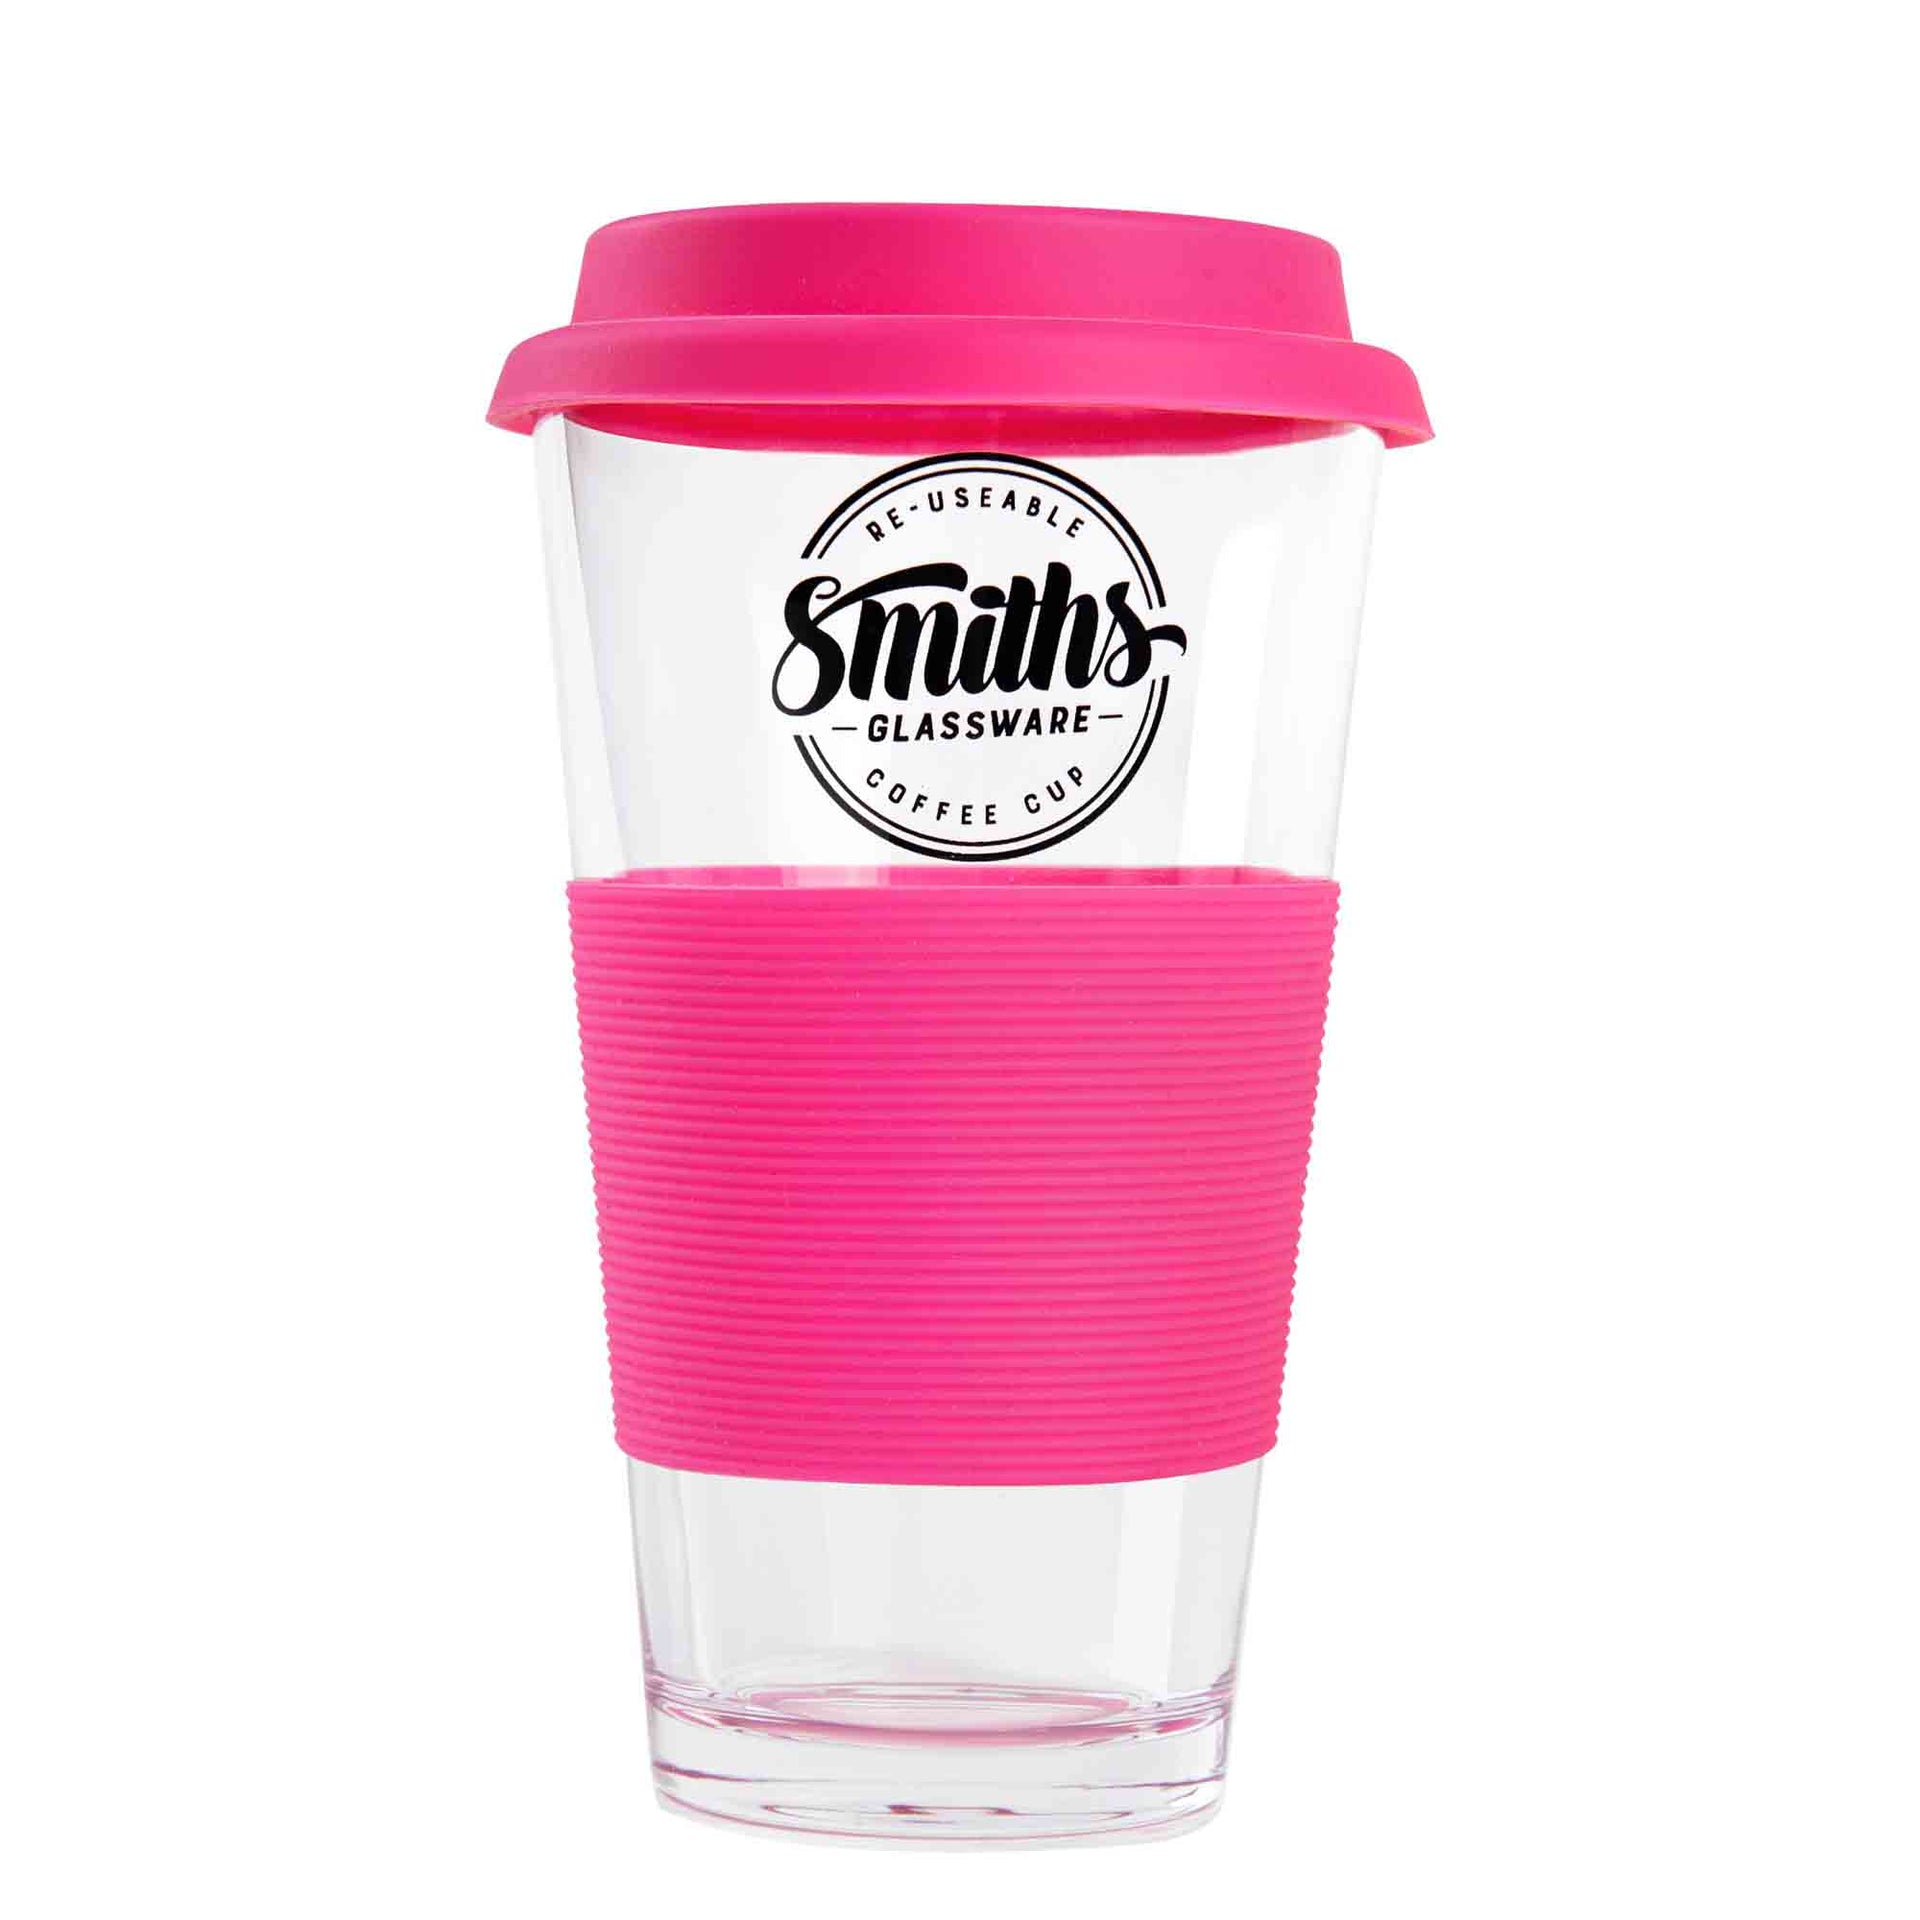 Glass Coffee Cups with Silicone Handle - Set of 2 - For Hot or Cold Beverage To-Go - Great for Office, Gym - Fits Car Drinks Holder Perfectly | Smith's Mason Jars